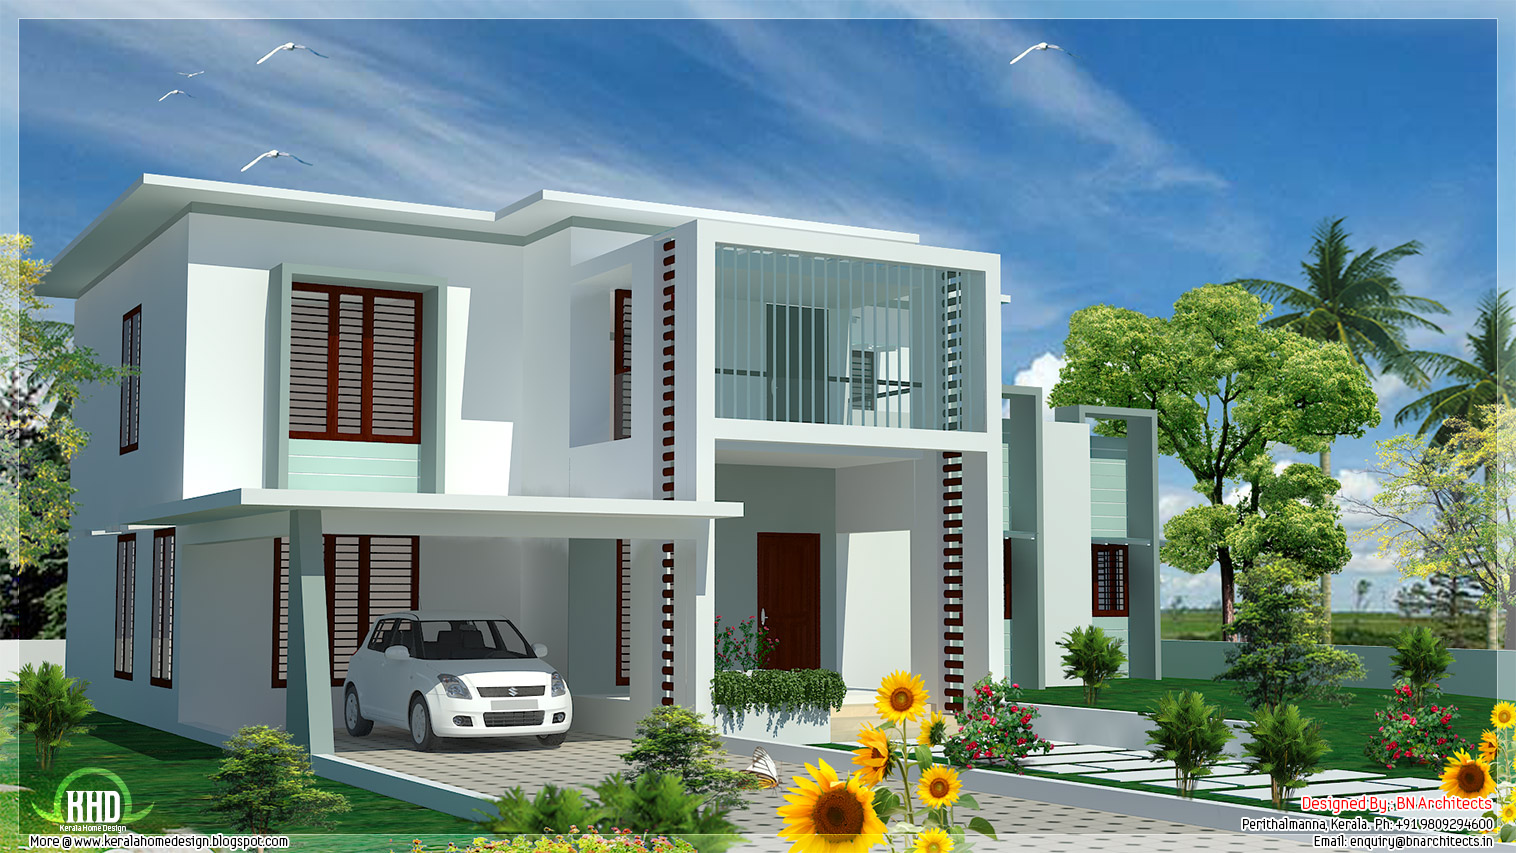 4 bedroom modern flat roof house kerala home design and for Modern roof design types